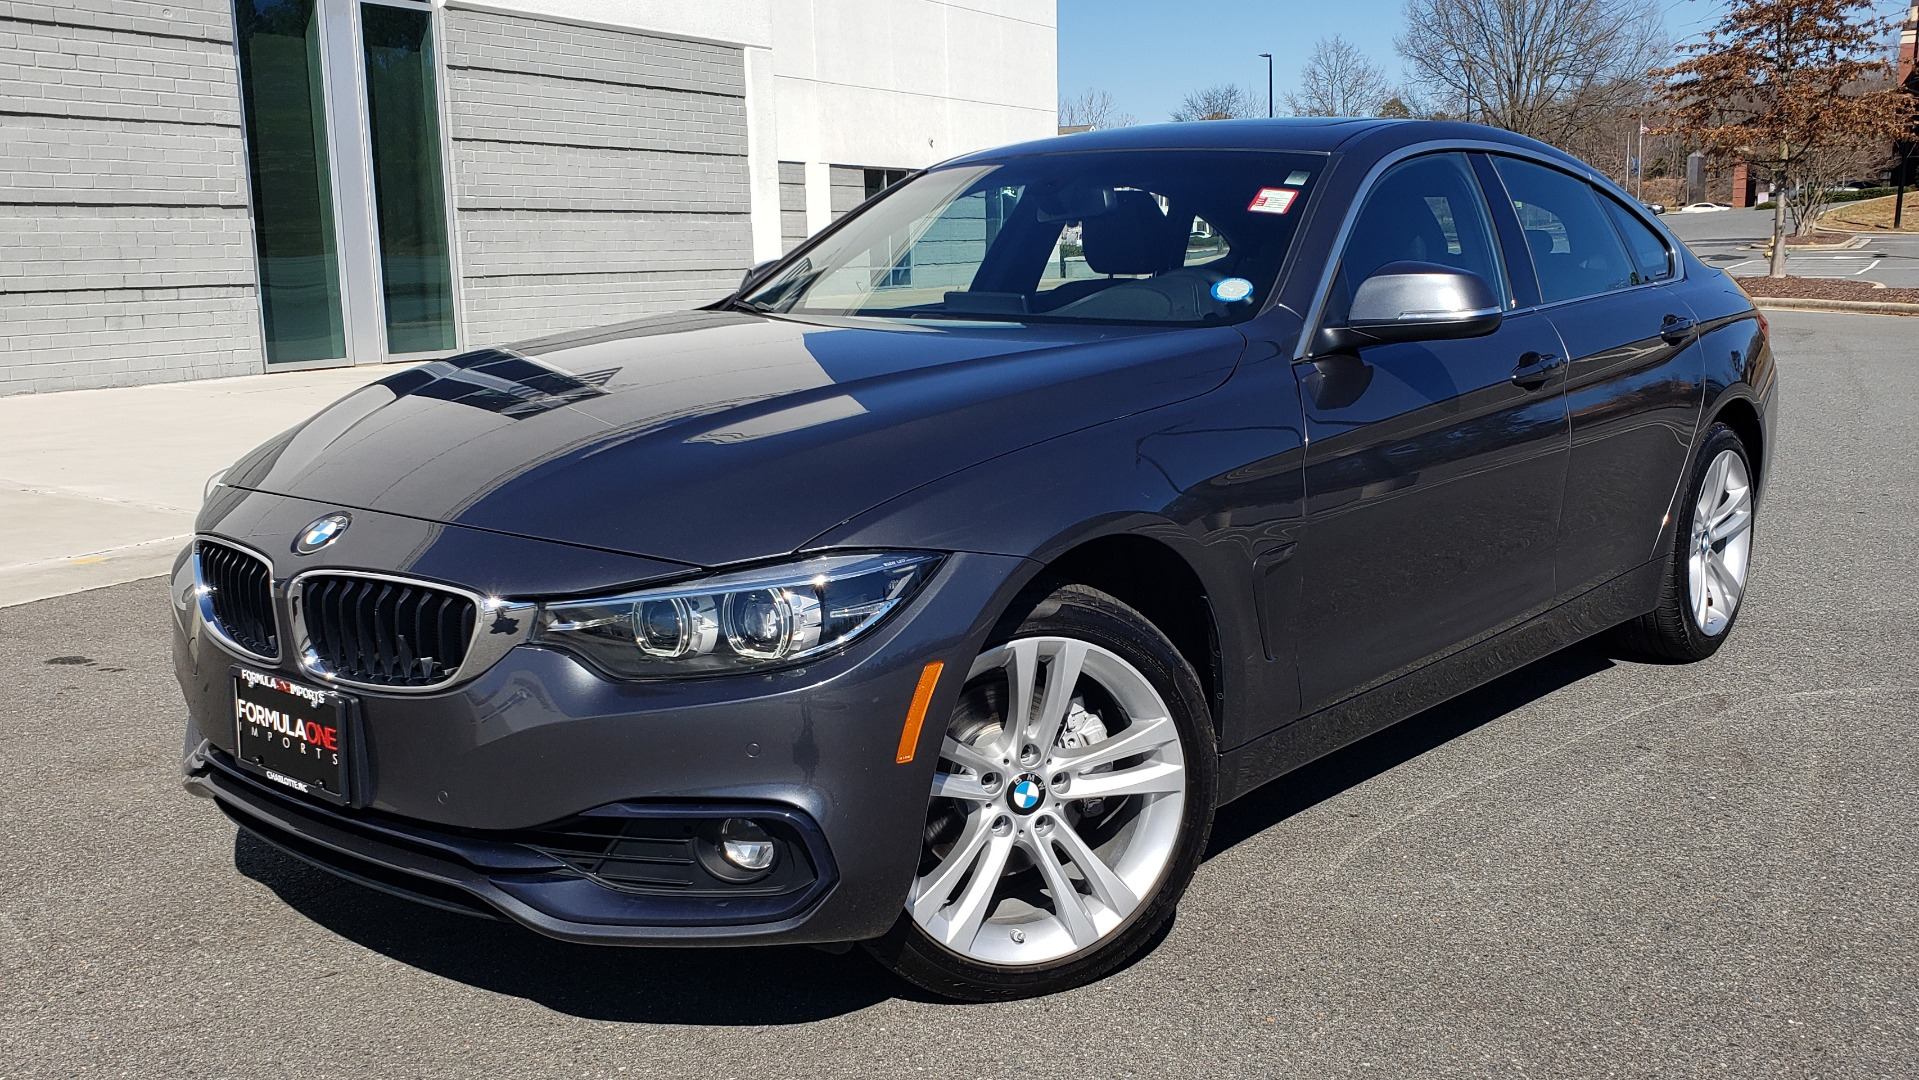 Used 2018 BMW 4 SERIES 430IXDRIVE / PREMIUM / NAV / SUNROOF / ESSENTIALS PKG for sale Sold at Formula Imports in Charlotte NC 28227 1